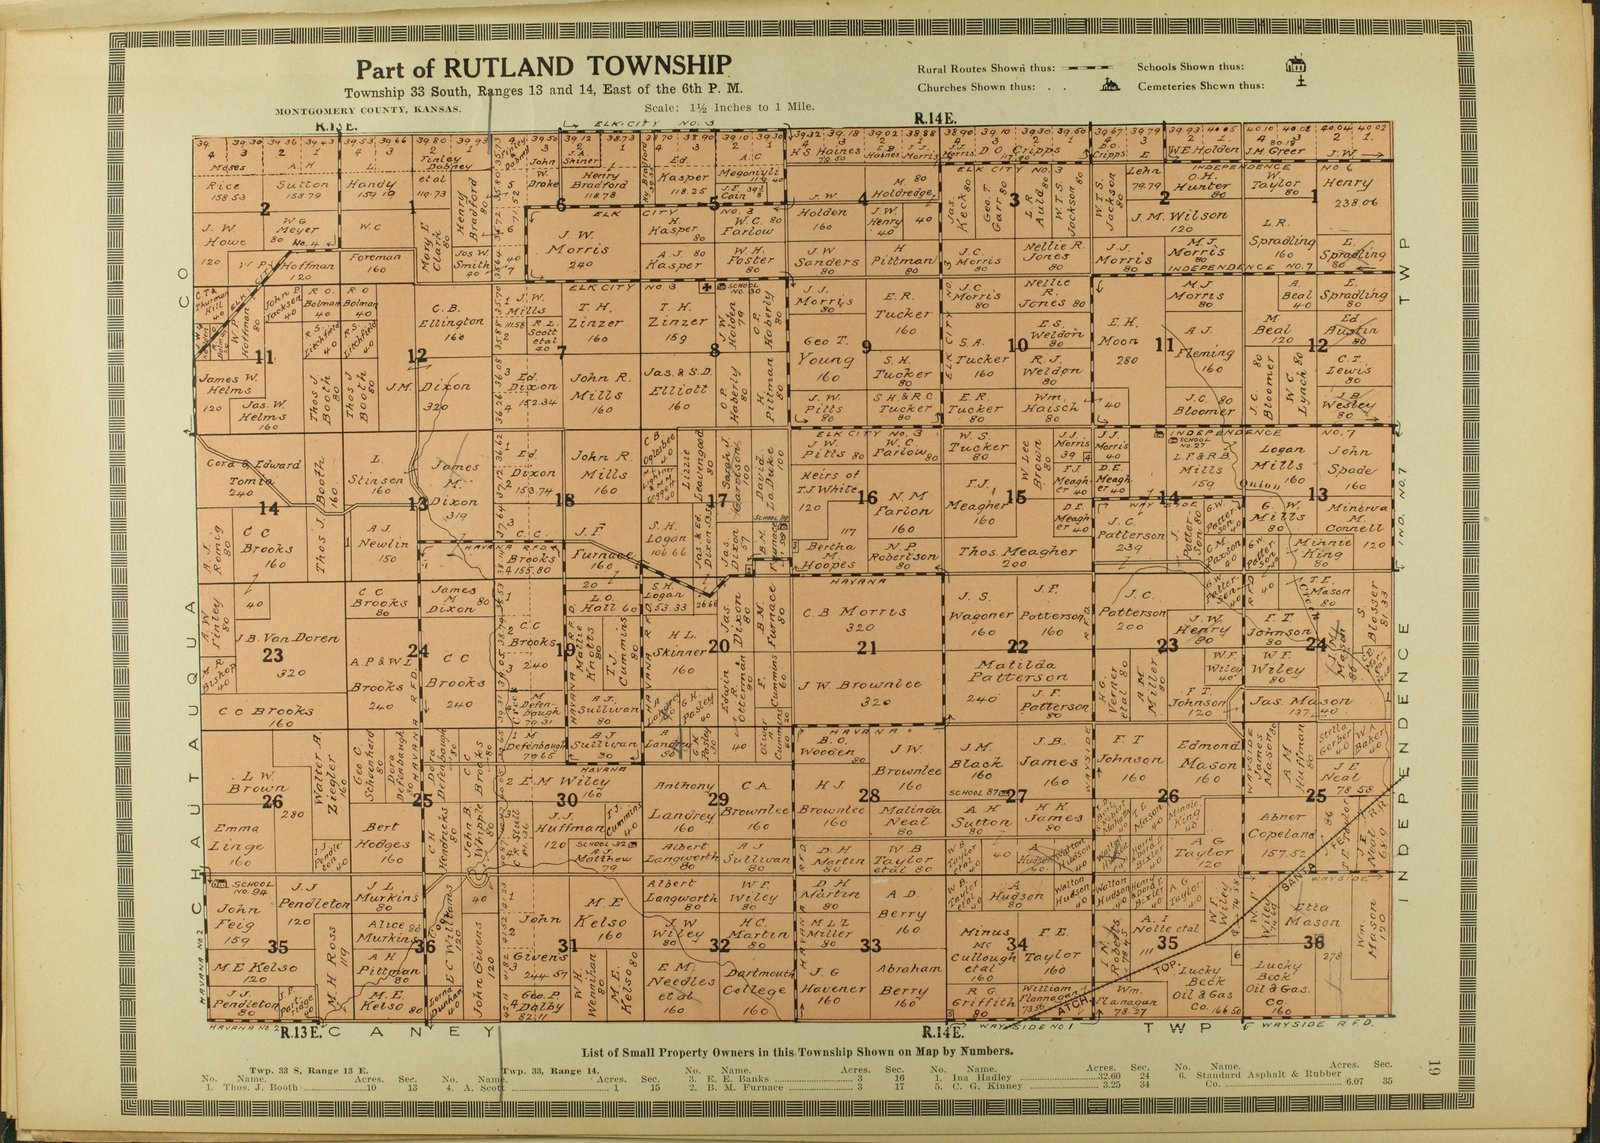 Atlas and plat book of Montgomery County, Kansas - 19